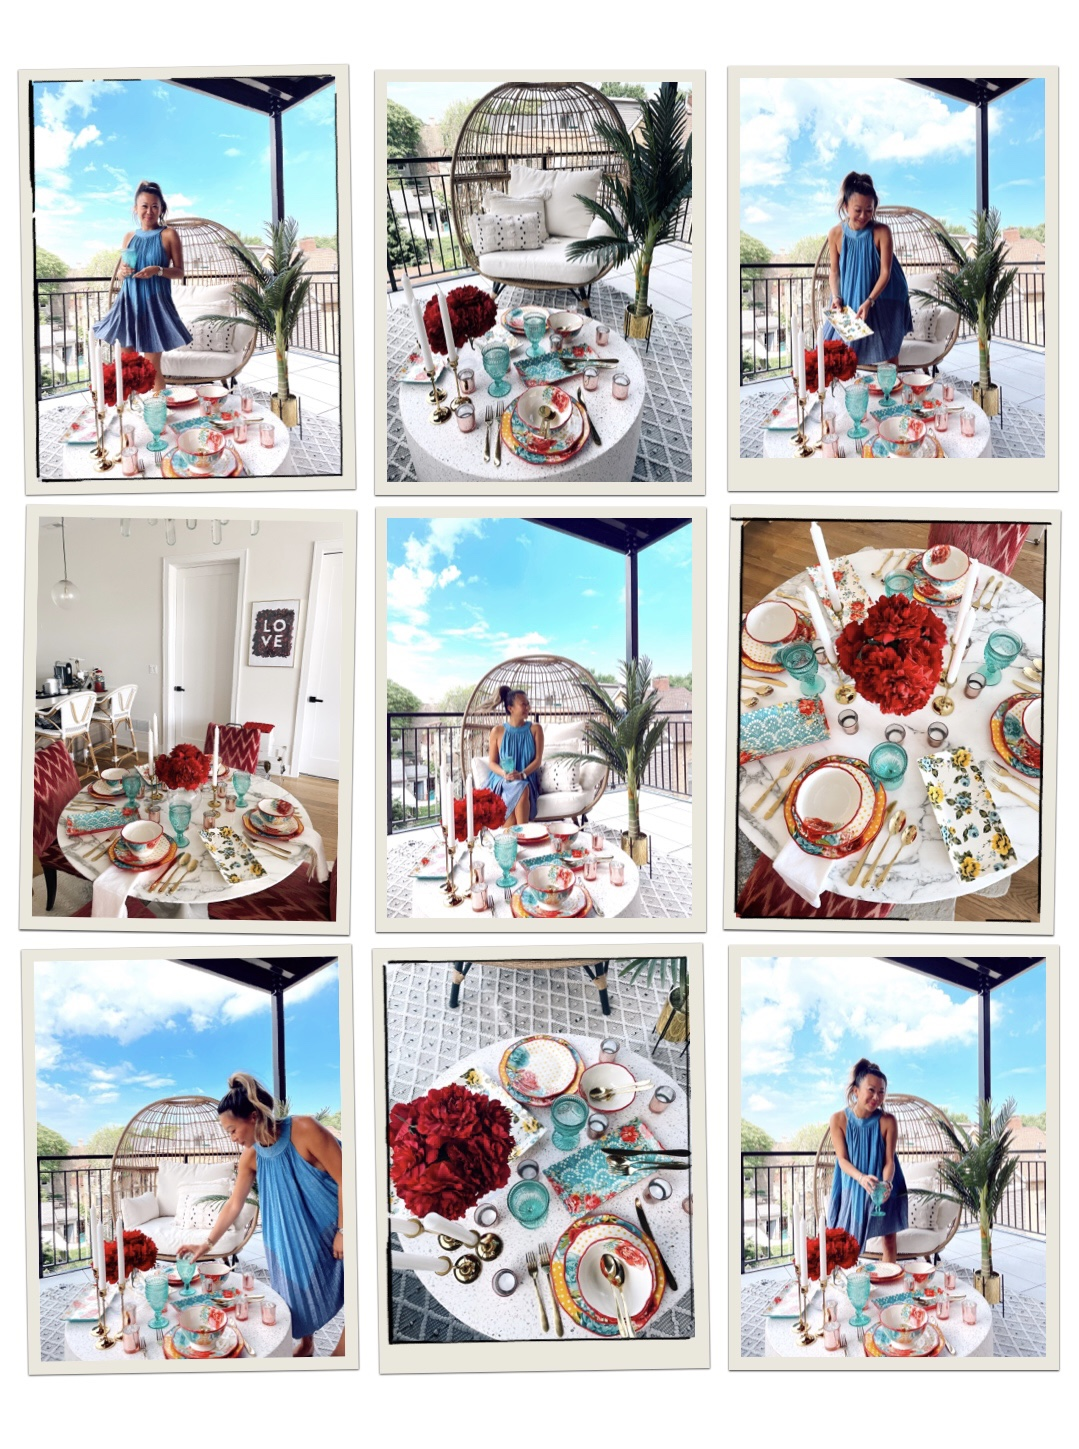 Summer Patio Home Entertaining Finds from Walmart, outdoor party table setting, vibrant tablscape, Summer table decor, Summer dinner party ideas, patio table settings, outdoor table settings, red white and blue party decor, affordable vibrant tabletop ideas, summer tabletop ideas, egg chair styling, Walmart home decor patios, Walmart patio finds, outdoor entertaining, indoor entertaining